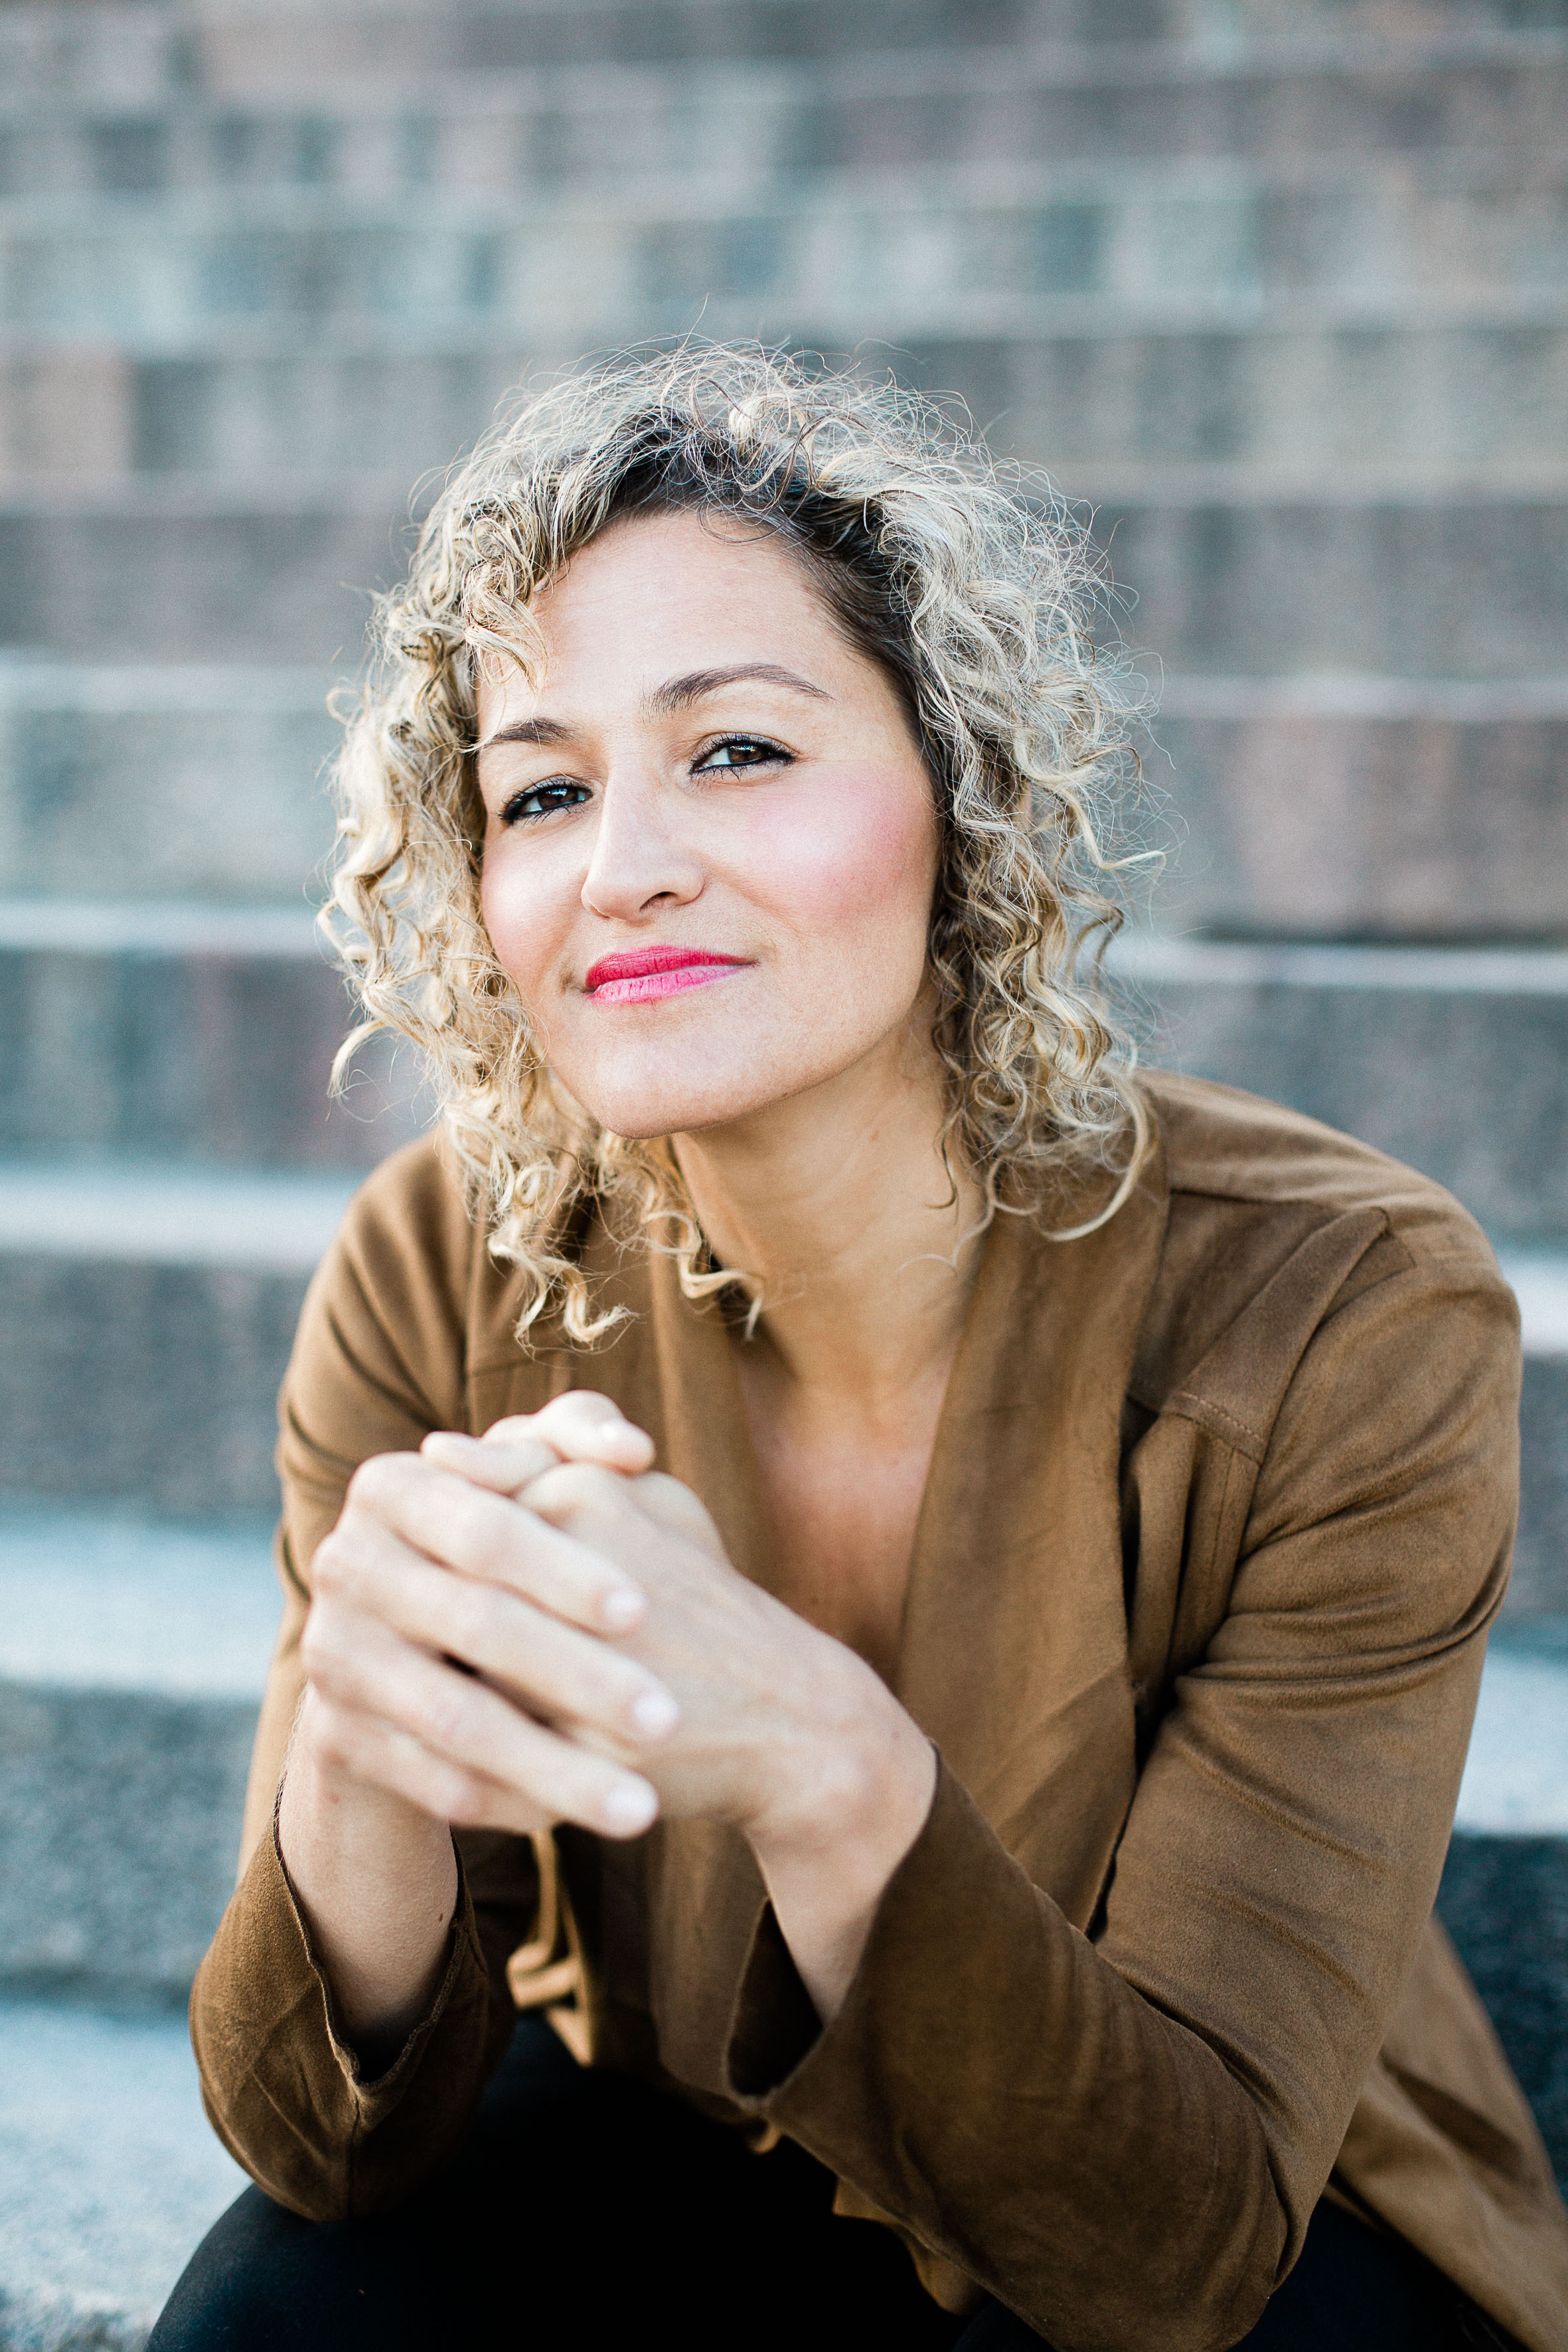 Dawn Jani Birley headshot - seatedwoman with blonde curly shoulder-length hair clasping hands loosely in front of herself, wearing a soft tan blazer and black pants